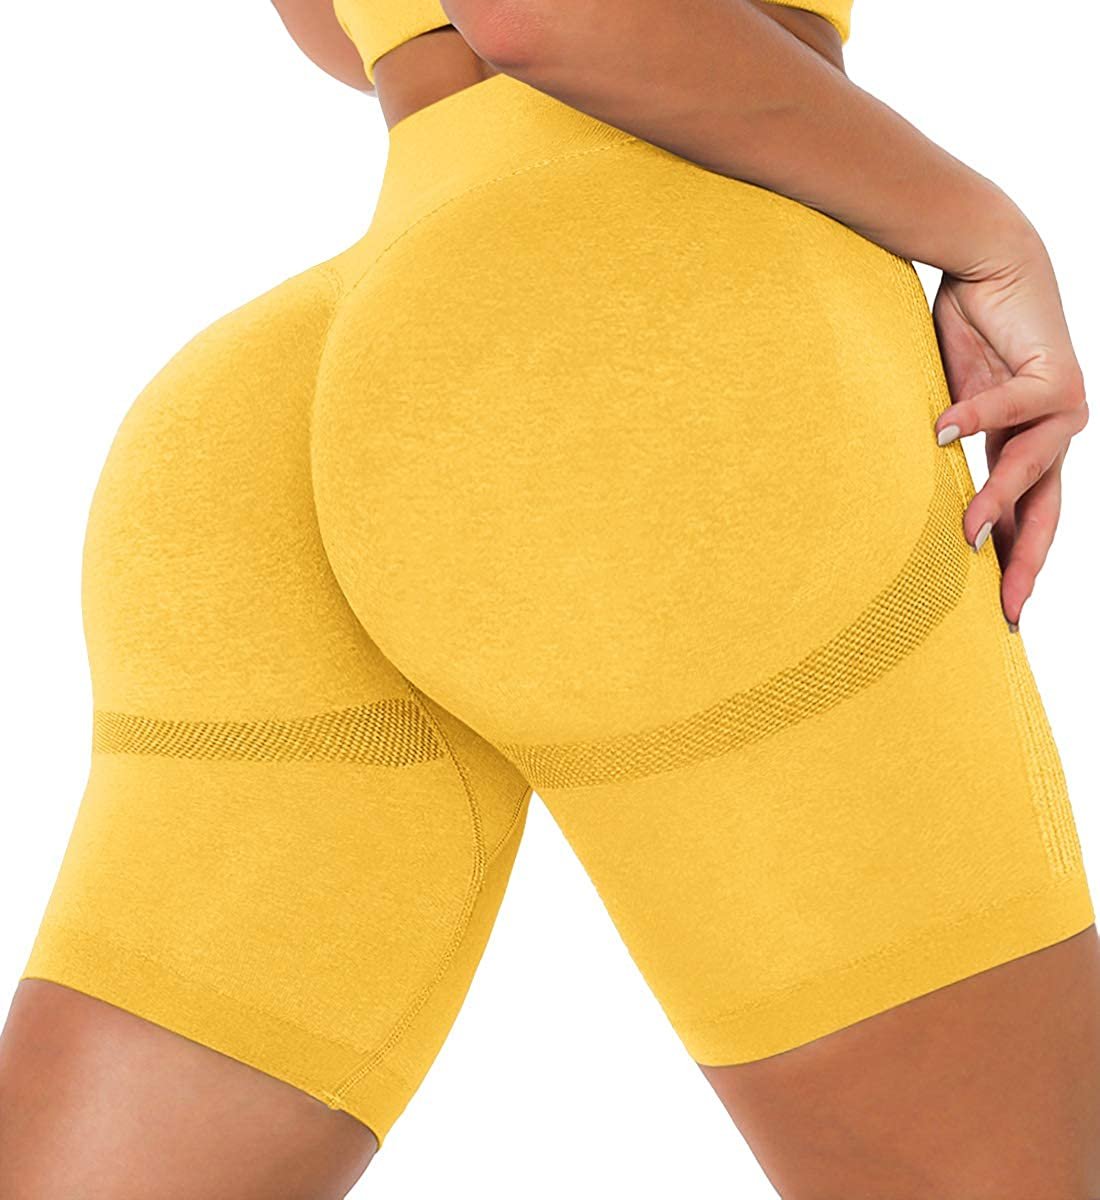 JANVUR Women's Anti Cellulite Shorts BootyButt Lifting Scrunch Yoga Shorts Booty Ruched Textured Sexy Workout Leggings